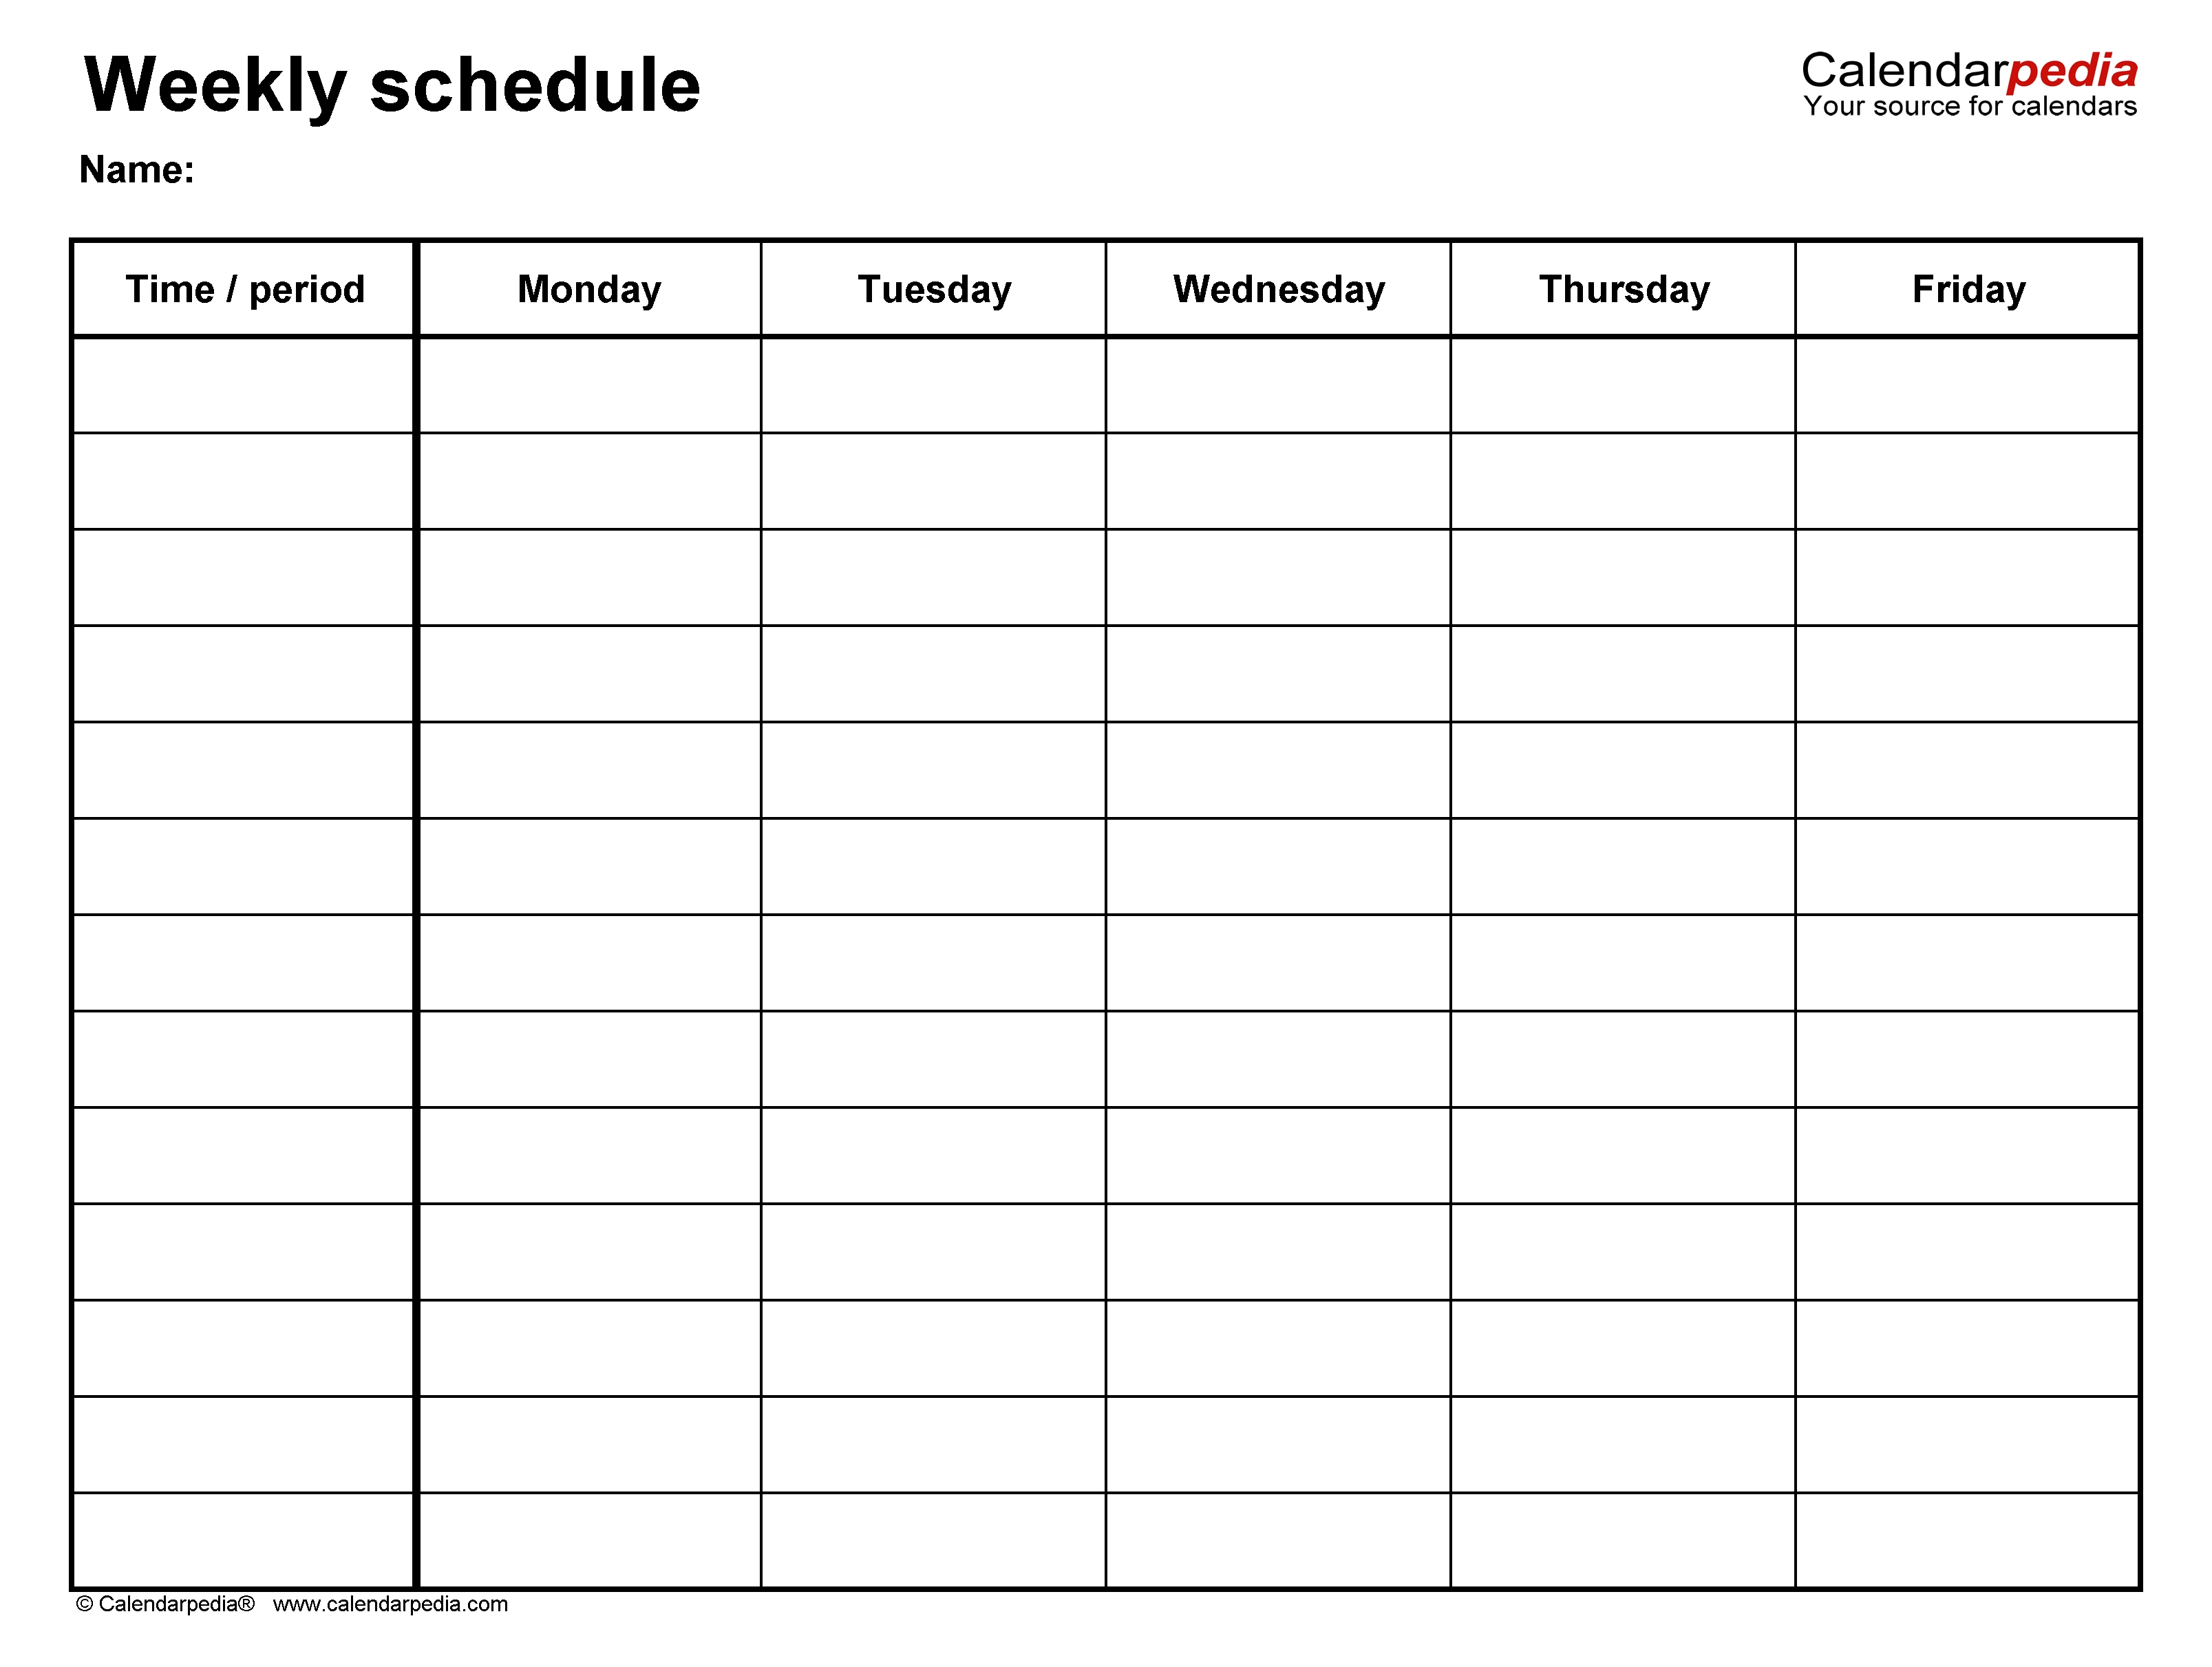 Free Weekly Schedule Templates For Word - 18 Templates-5 Day Week Calender Template